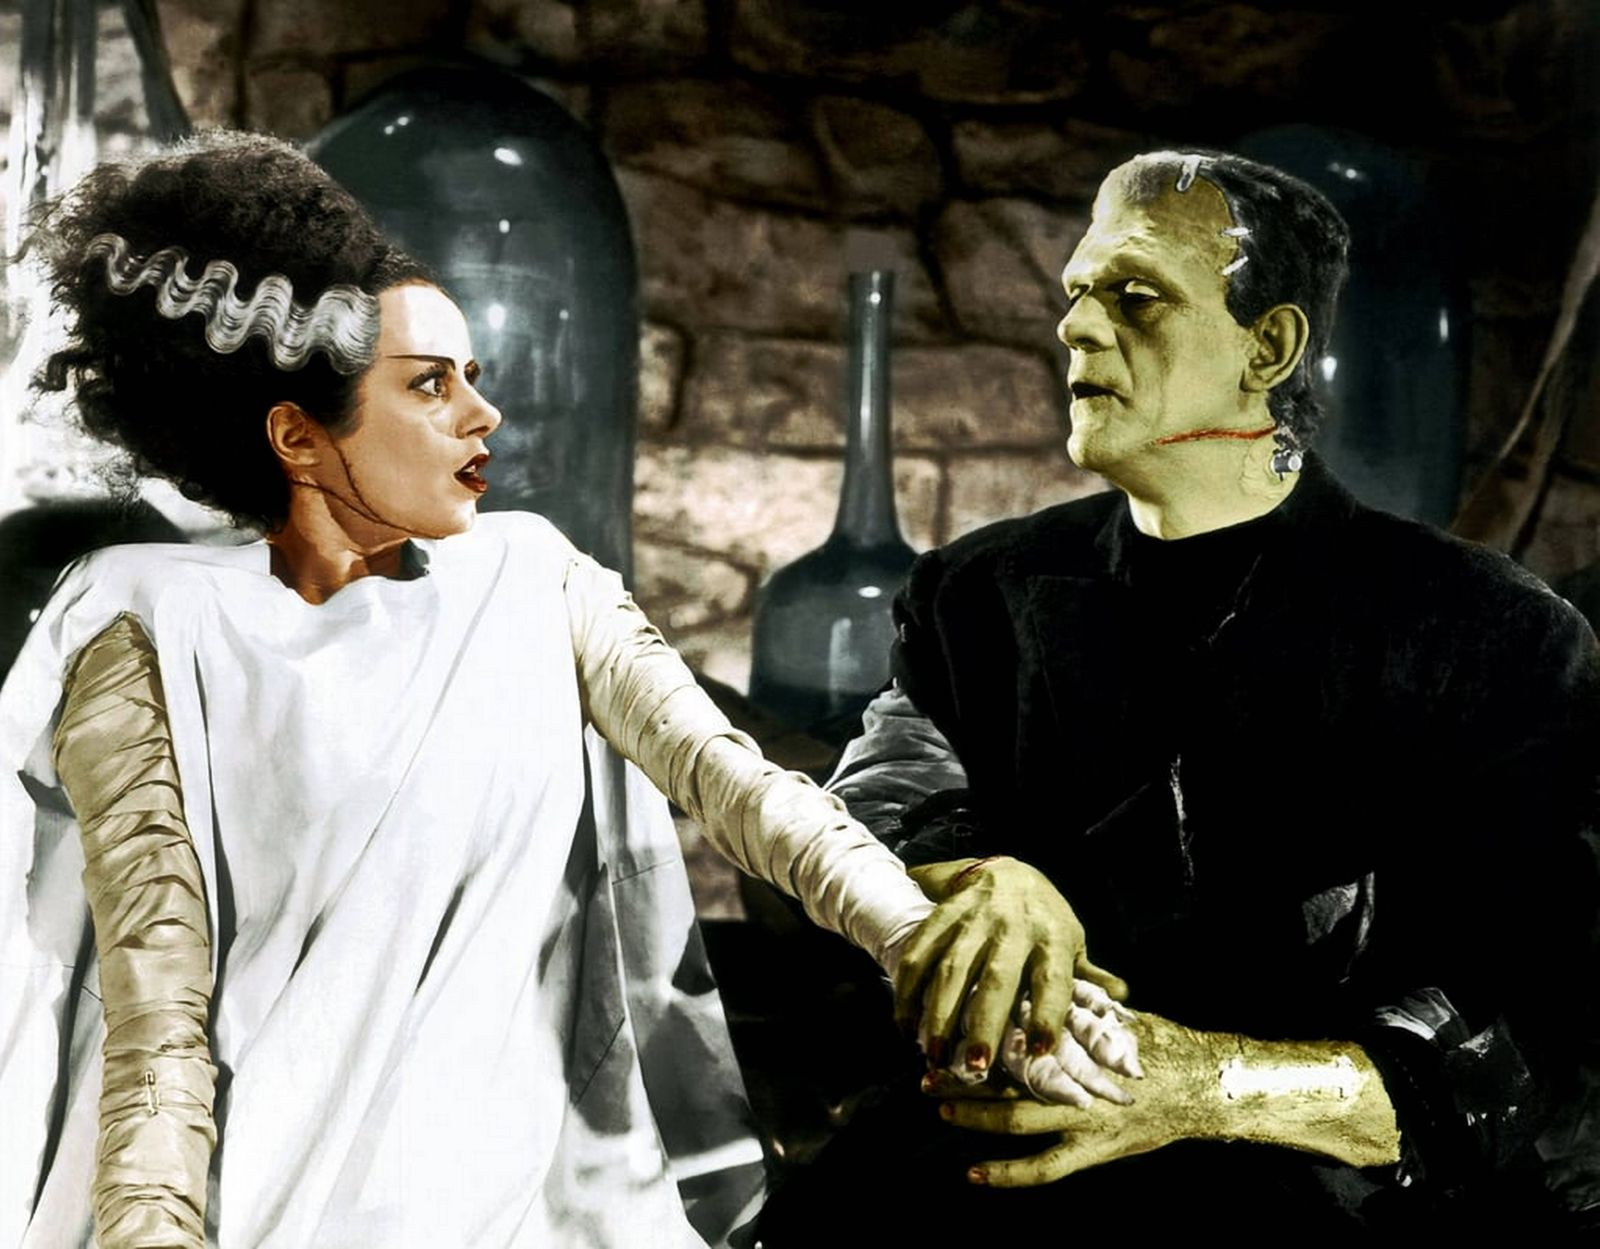 Elsa Lanchester Bride of Frankenstein is a 1935 American science fiction horror film the first sequ